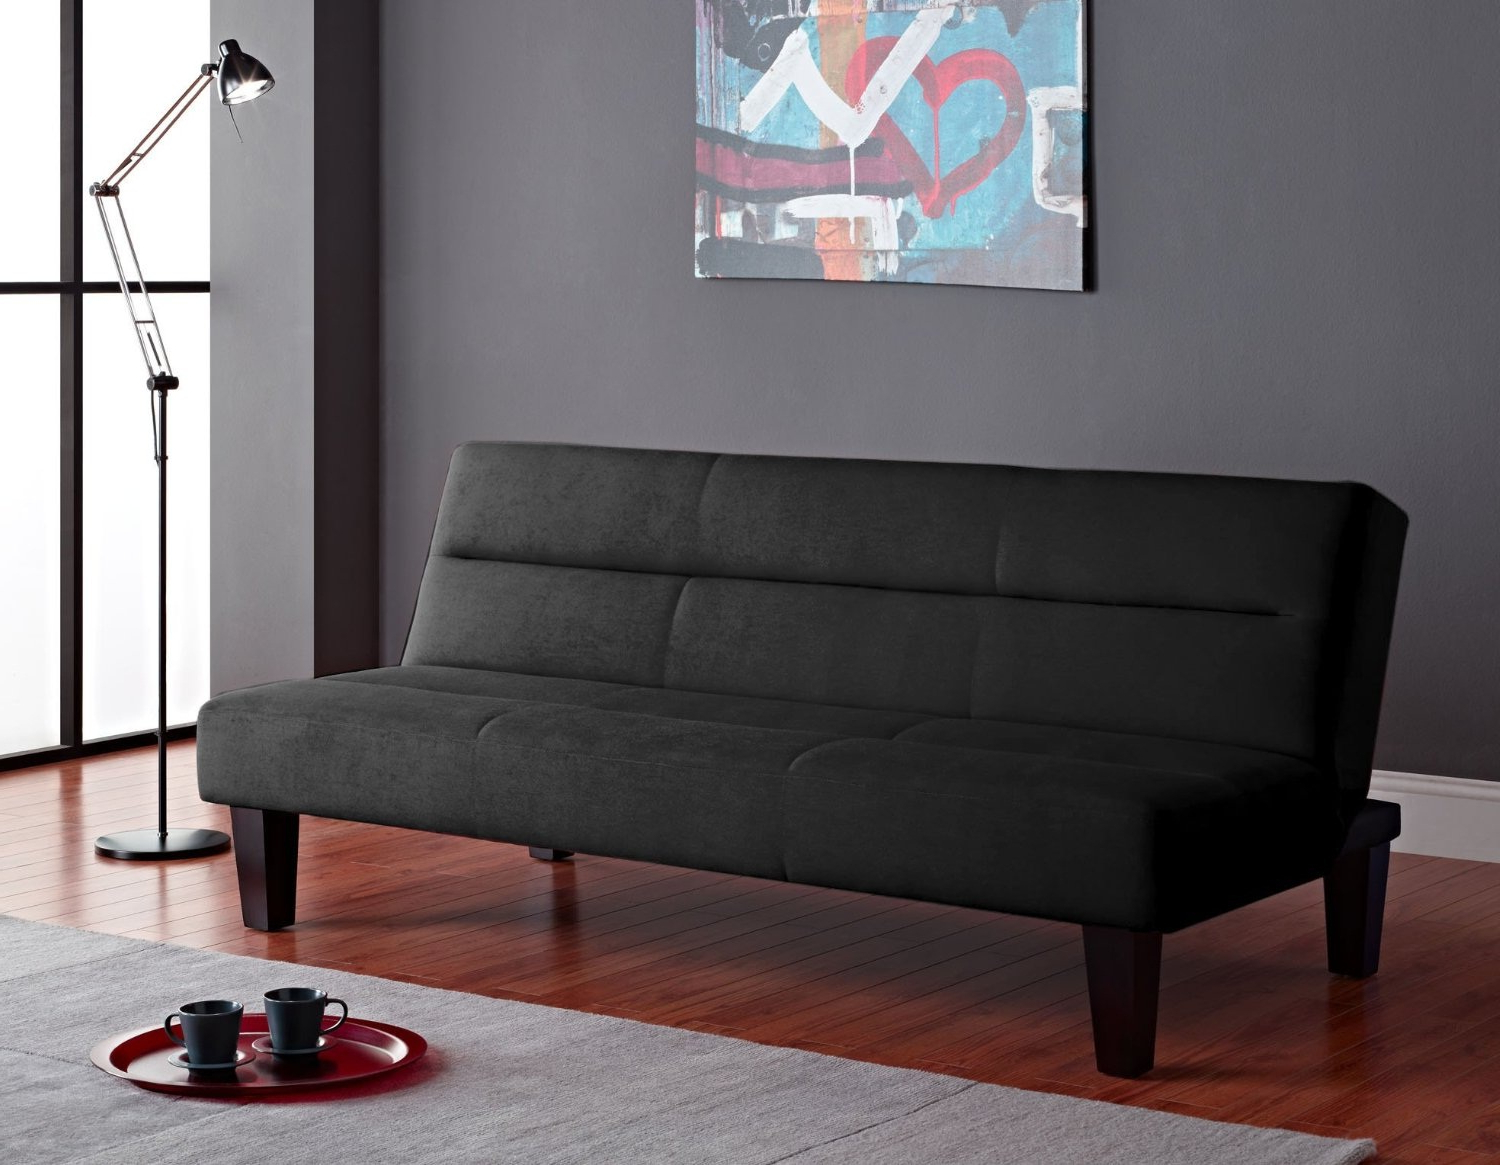 Easton Small Space Sectional Futon Sofas Intended For Fashionable Enhance Your Small Space Value With The Incredible Futon (View 19 of 25)